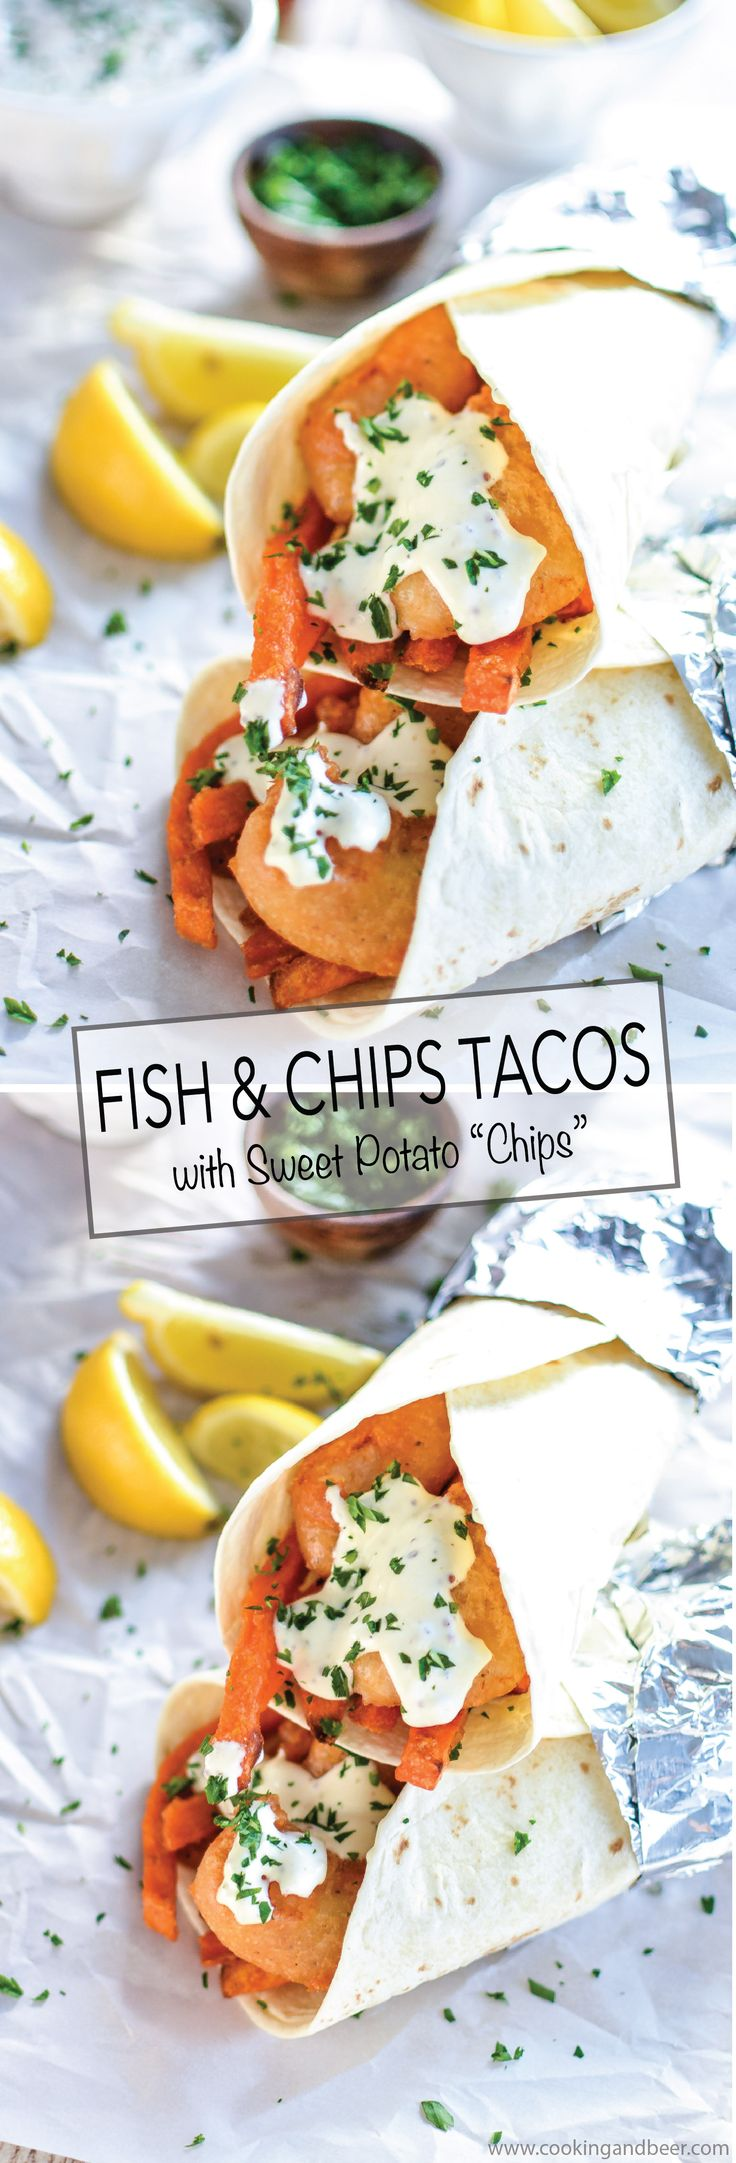 Best 25 fish and chips ideas on pinterest fish chips for Good fish tacos near me